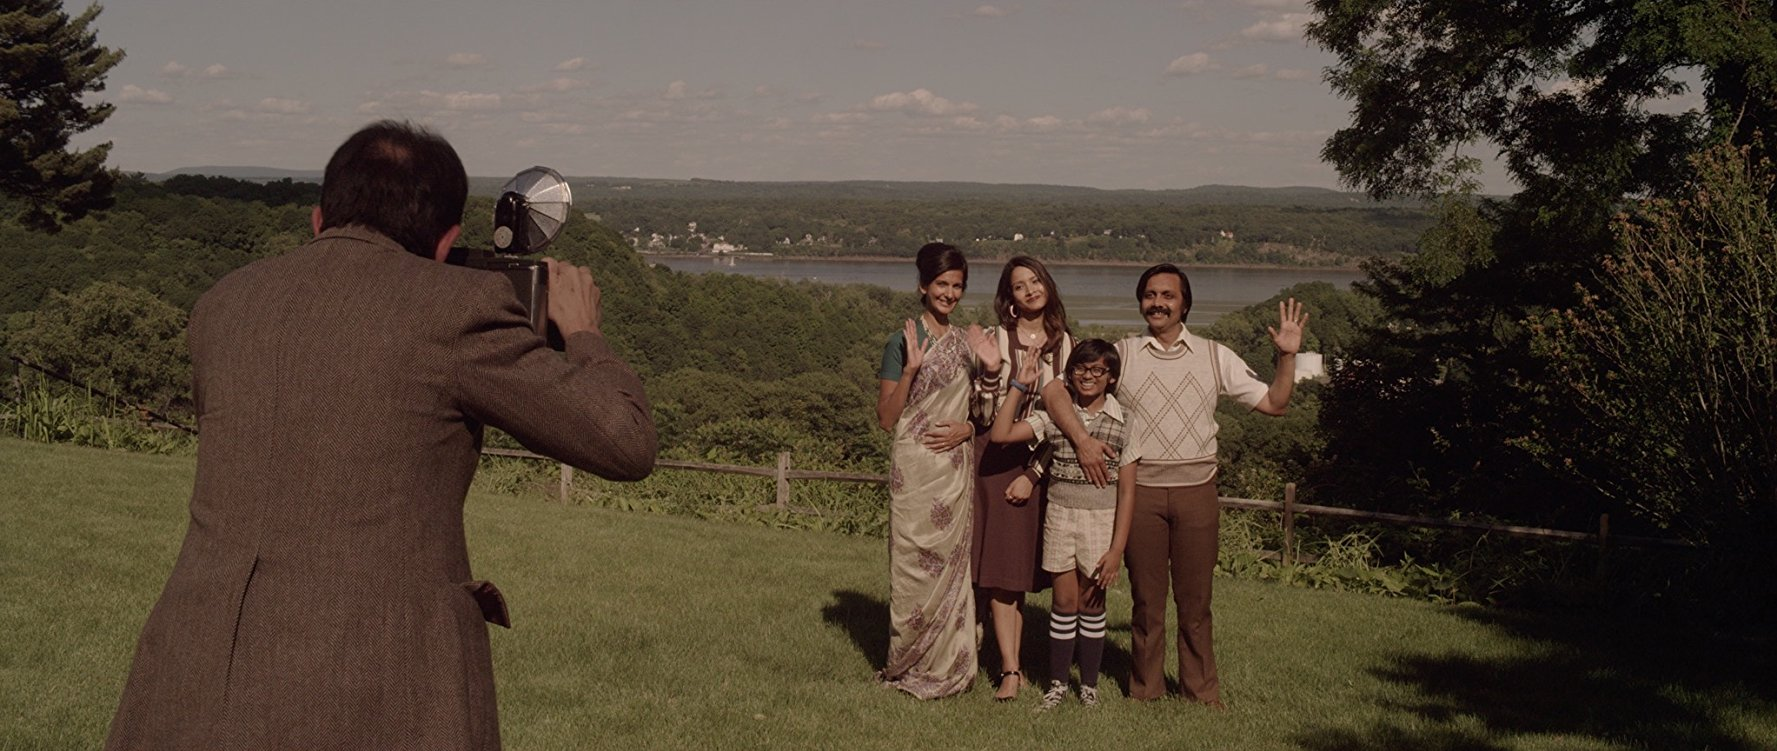 ulster county film industry